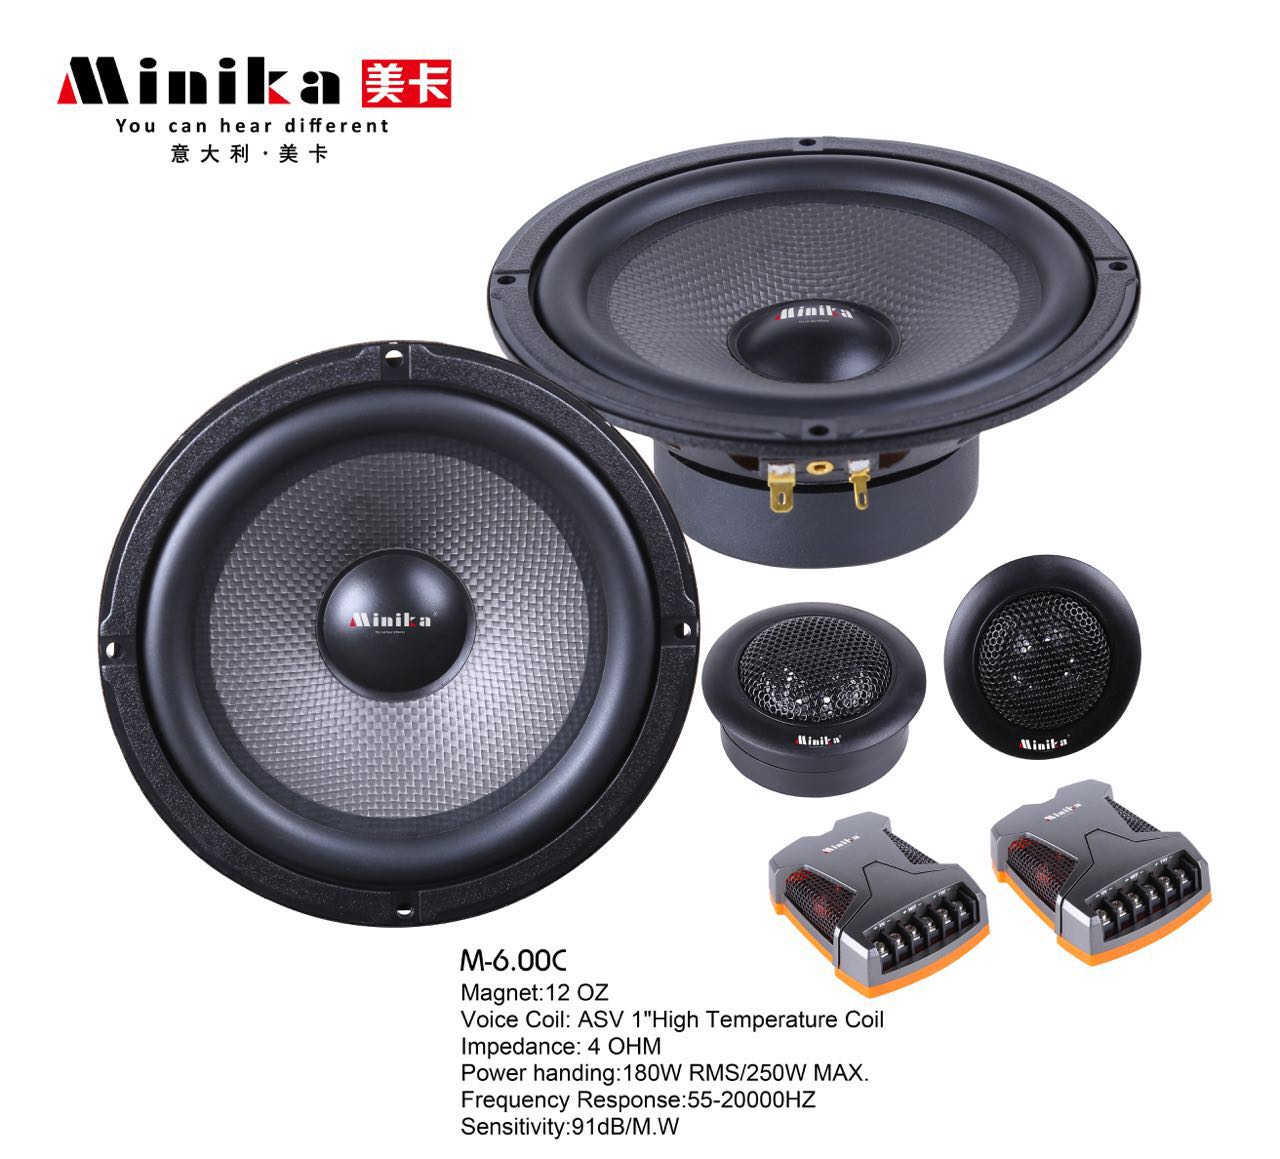 Minika 6.5inch Car Audio Speaker Component 4ohm 250W with Tweeter Cross  Over 2 Way HIFI